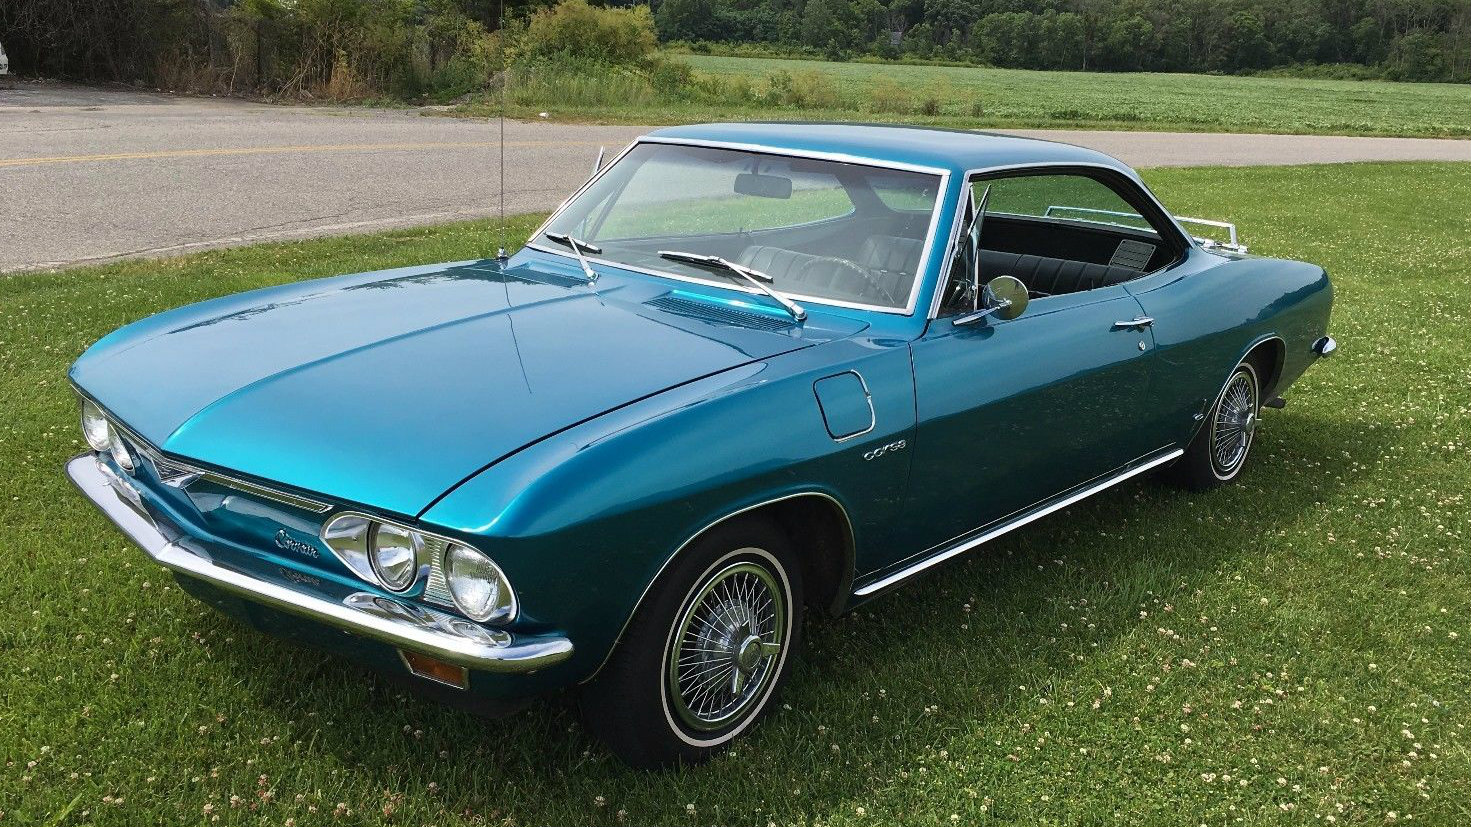 Blue Beauty 1966 Chevrolet Corvair Corsa